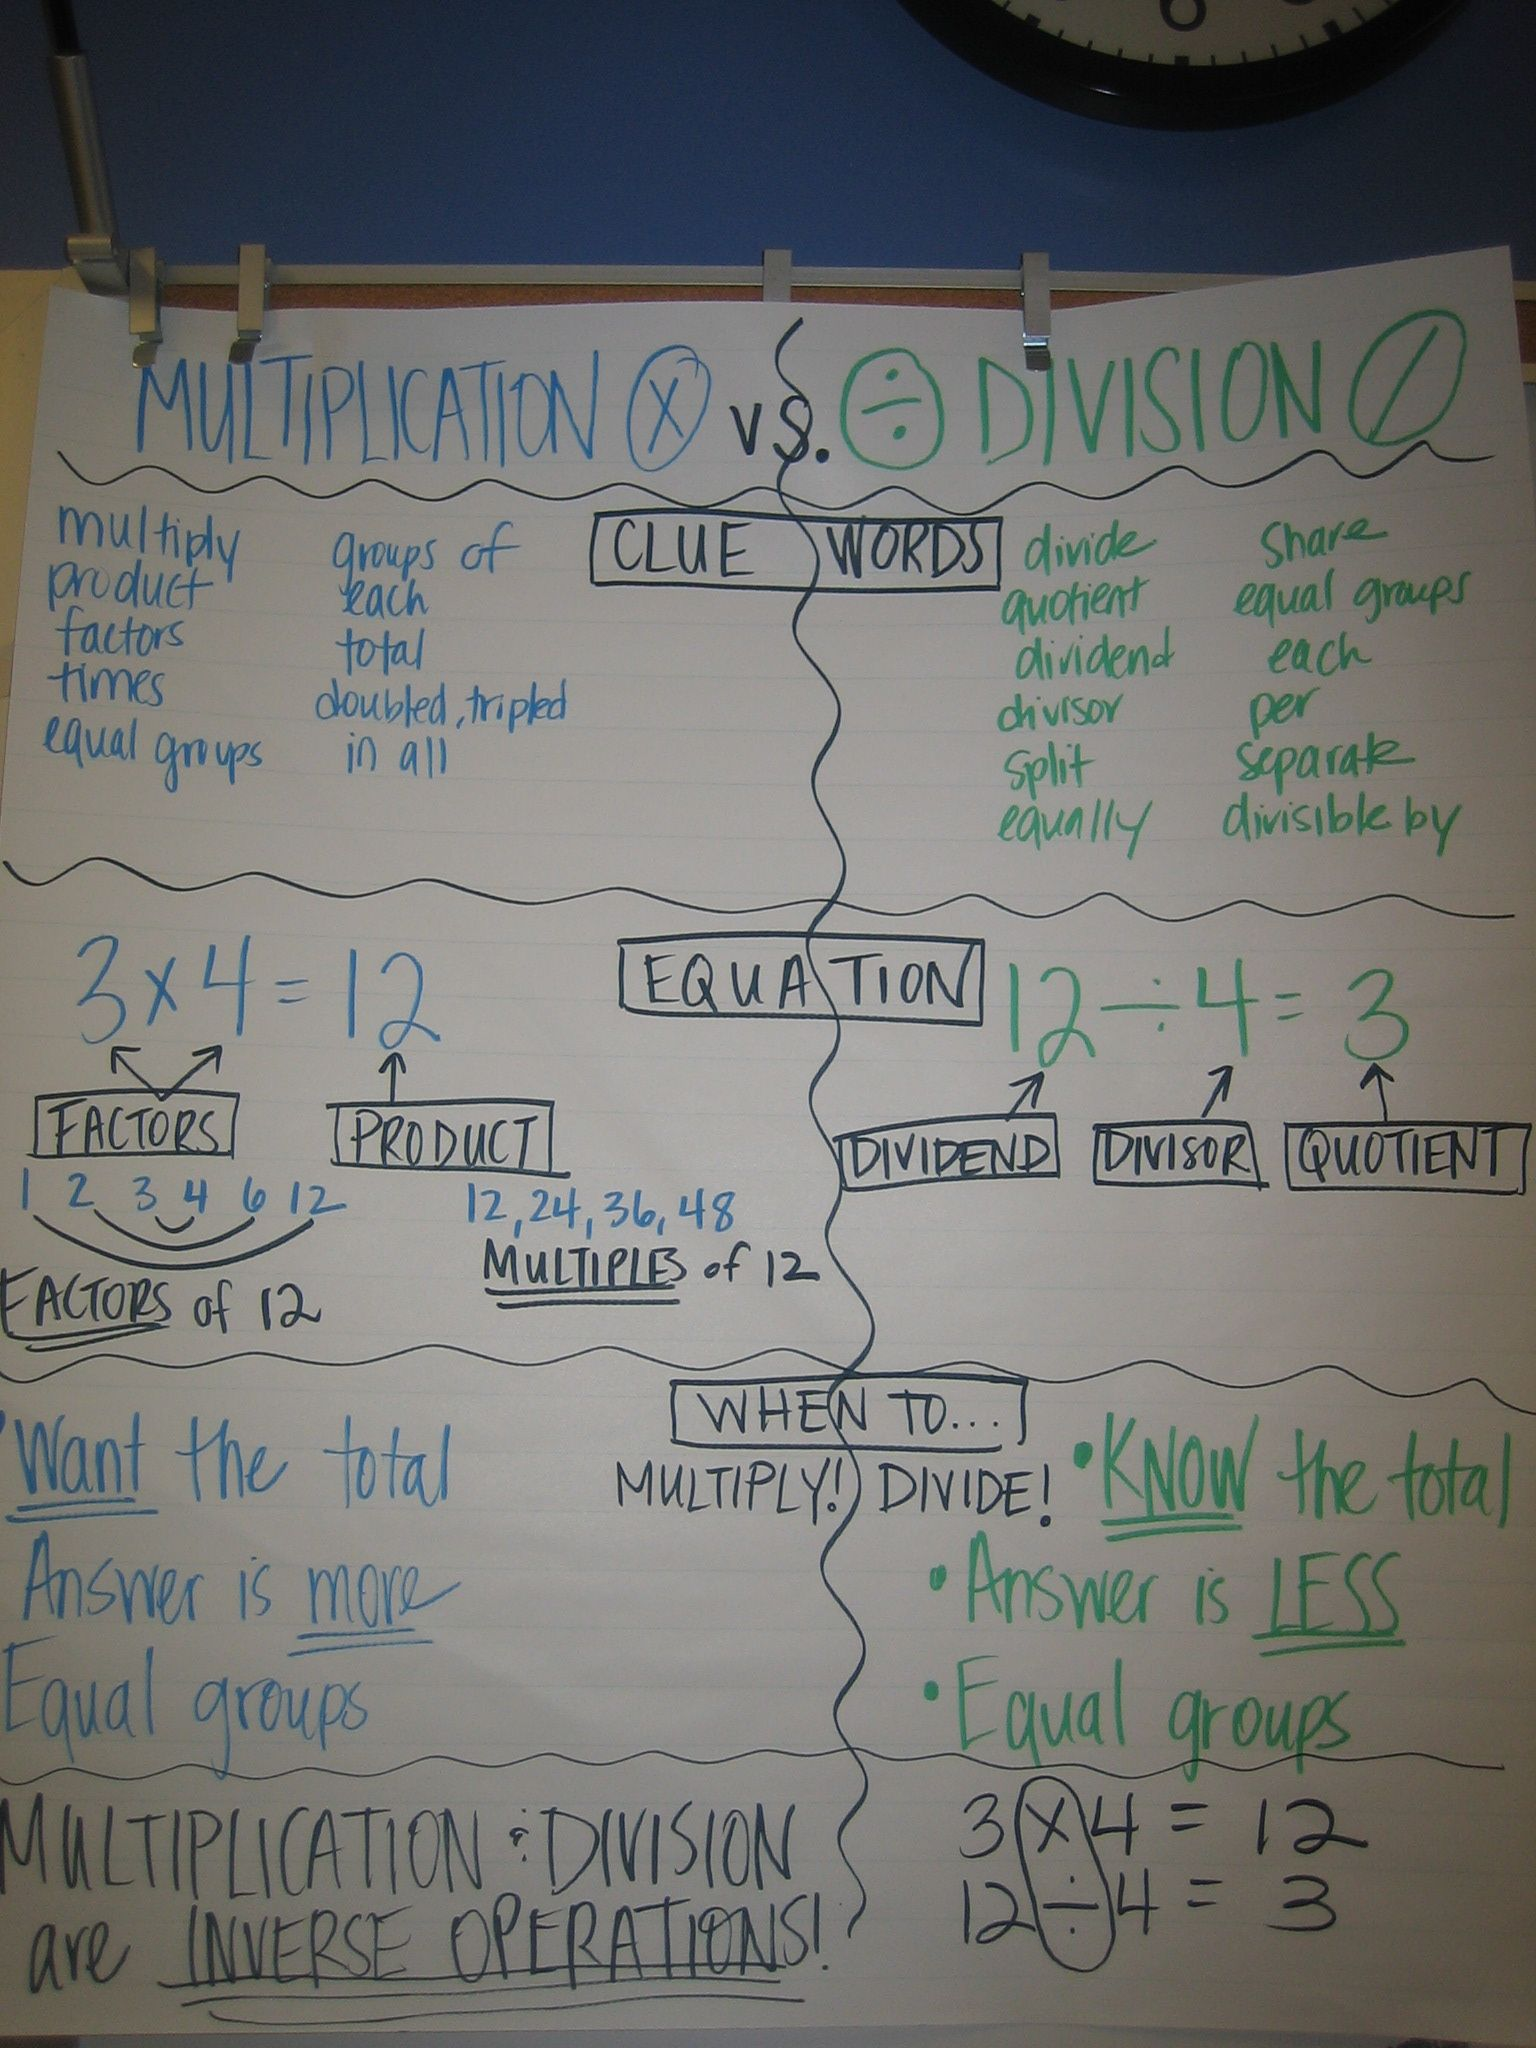 Multiplication Vs Division Be Careful With The Clue